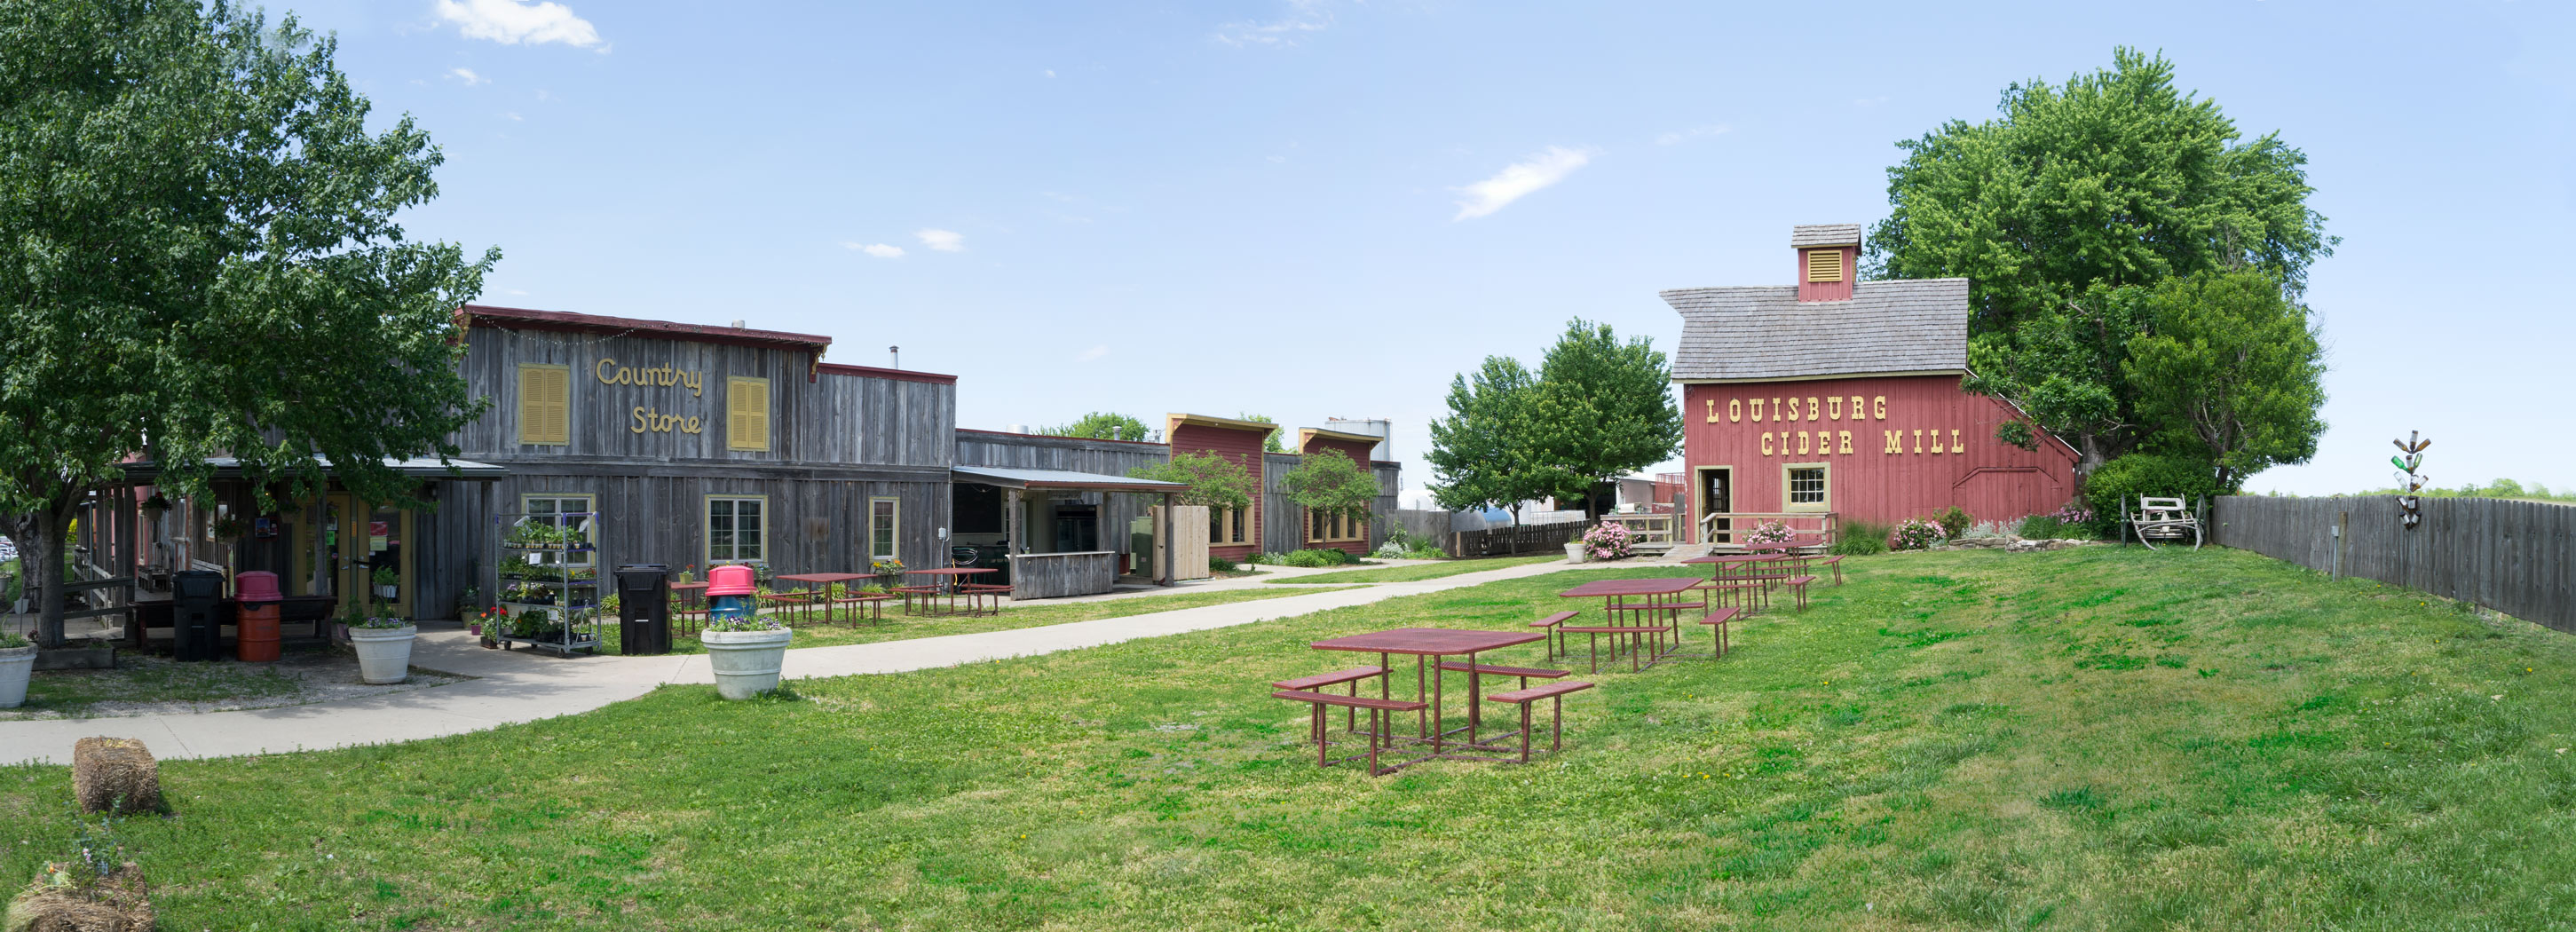 Louisburg Cider Mill Barn and Country Store